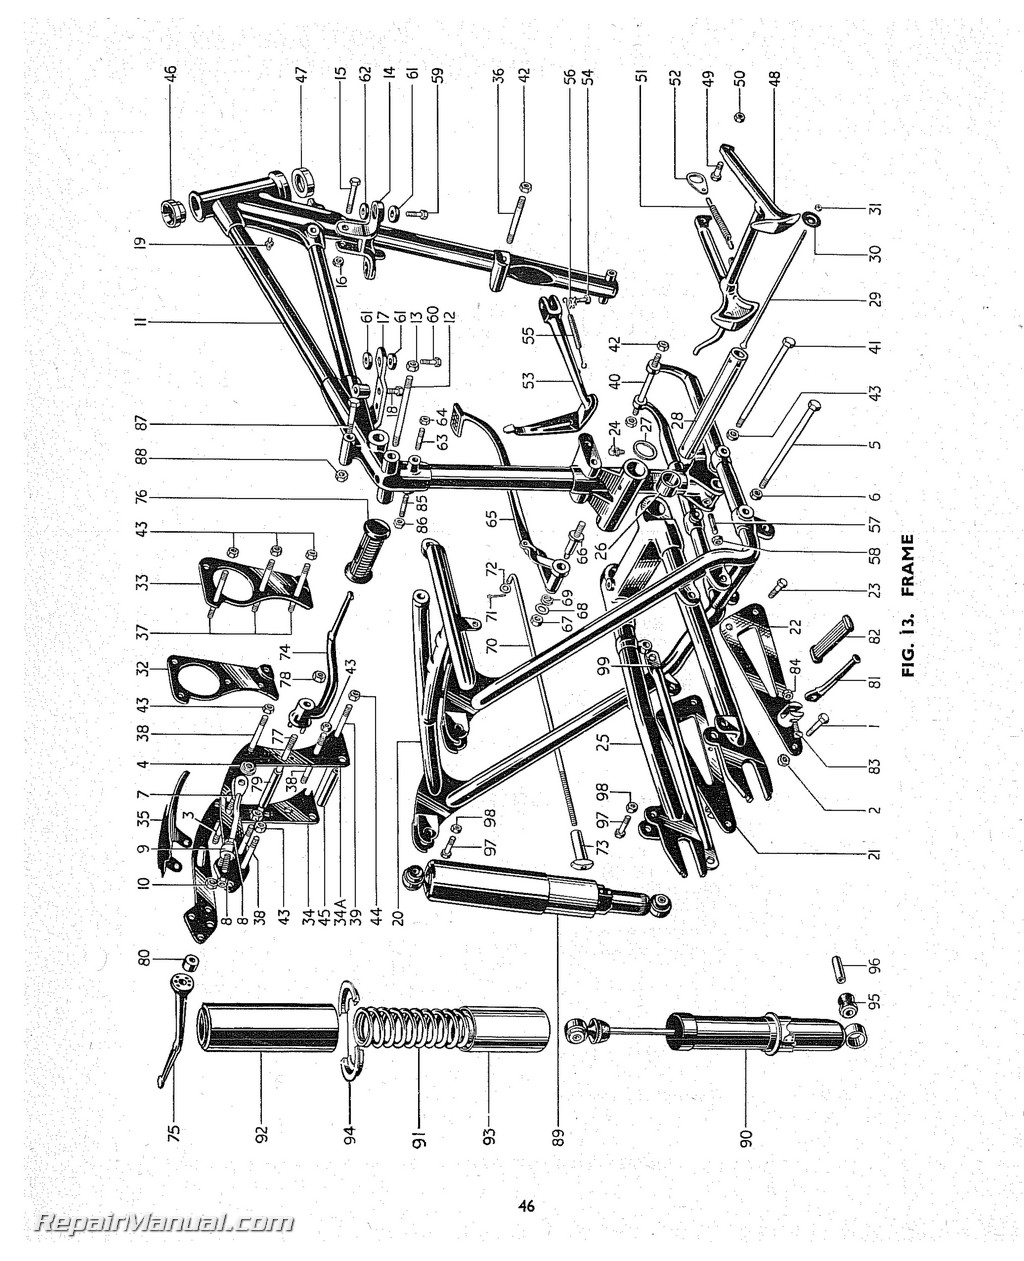 Triumph Replacement Parts Manual 1955 Speed Twin